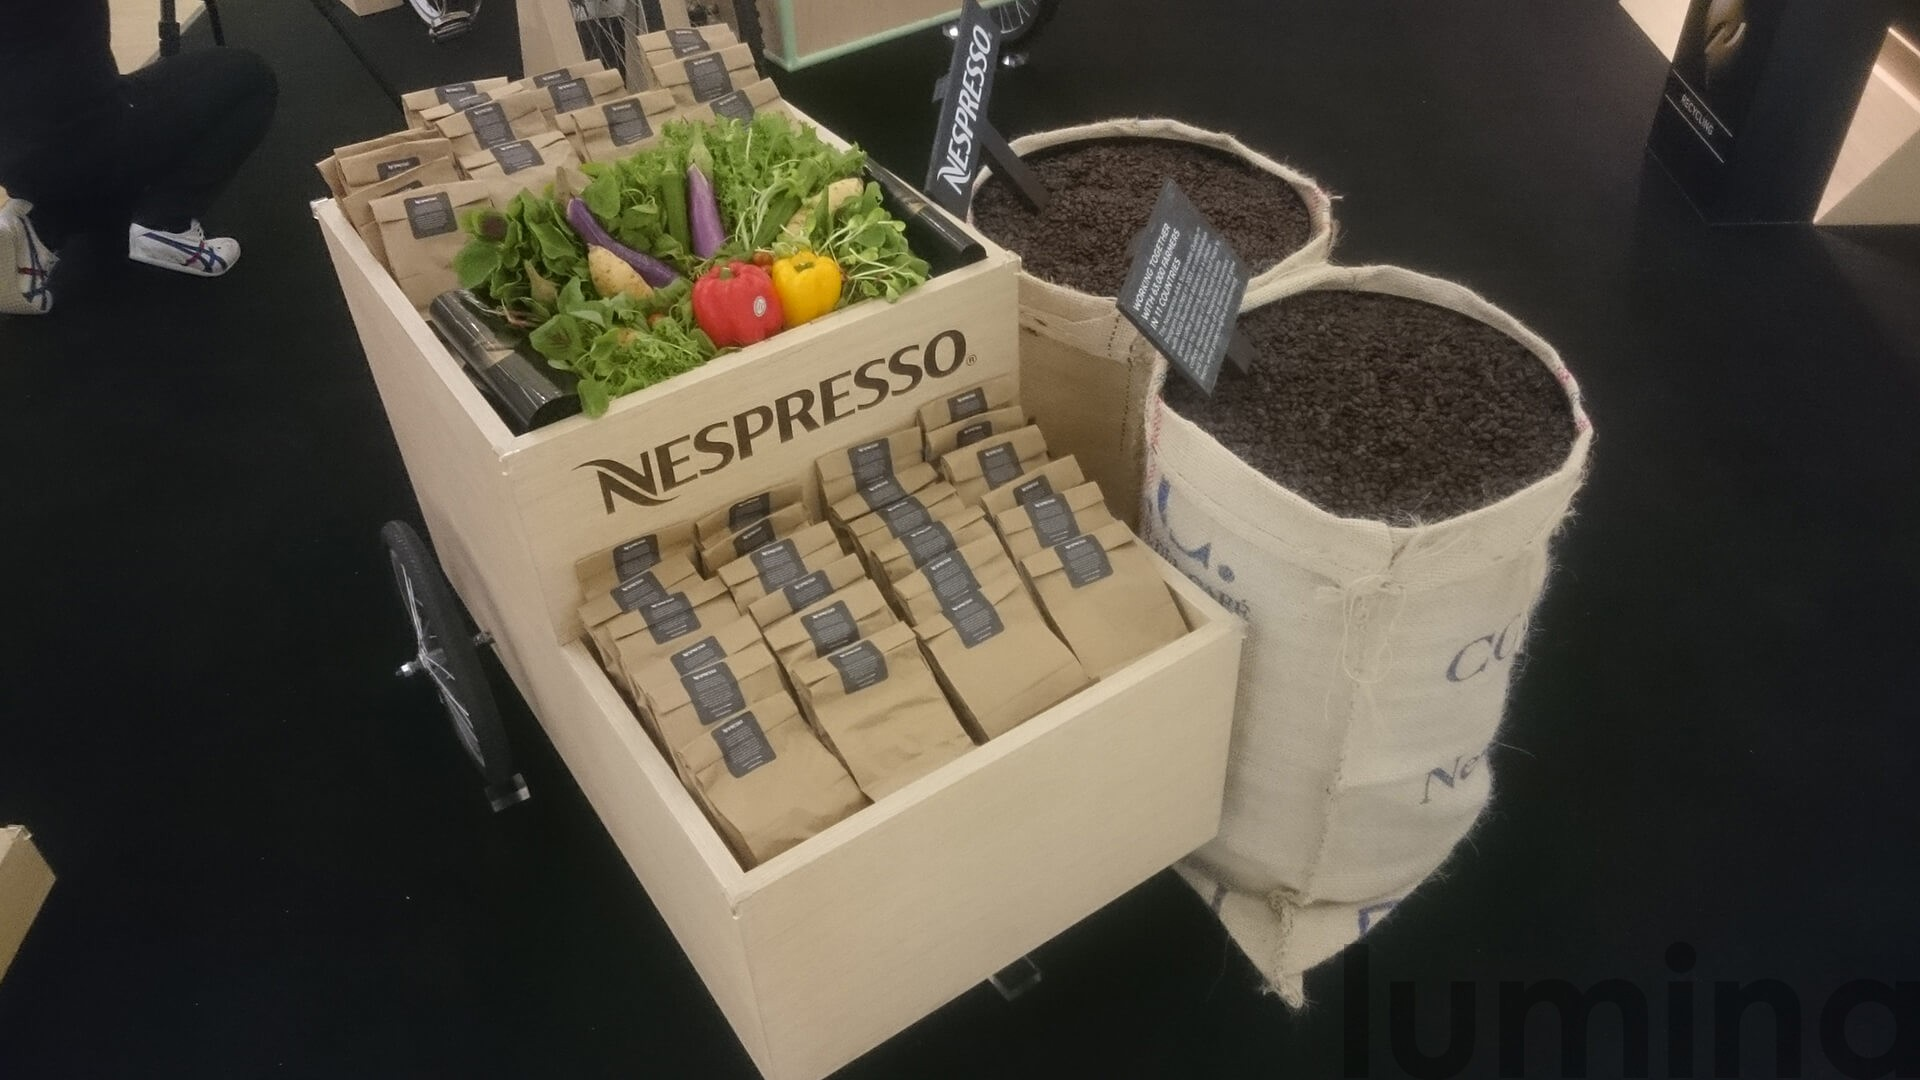 http://Nespresso%20–%20One%20Pod%20at%20a%20Time%20Campaign